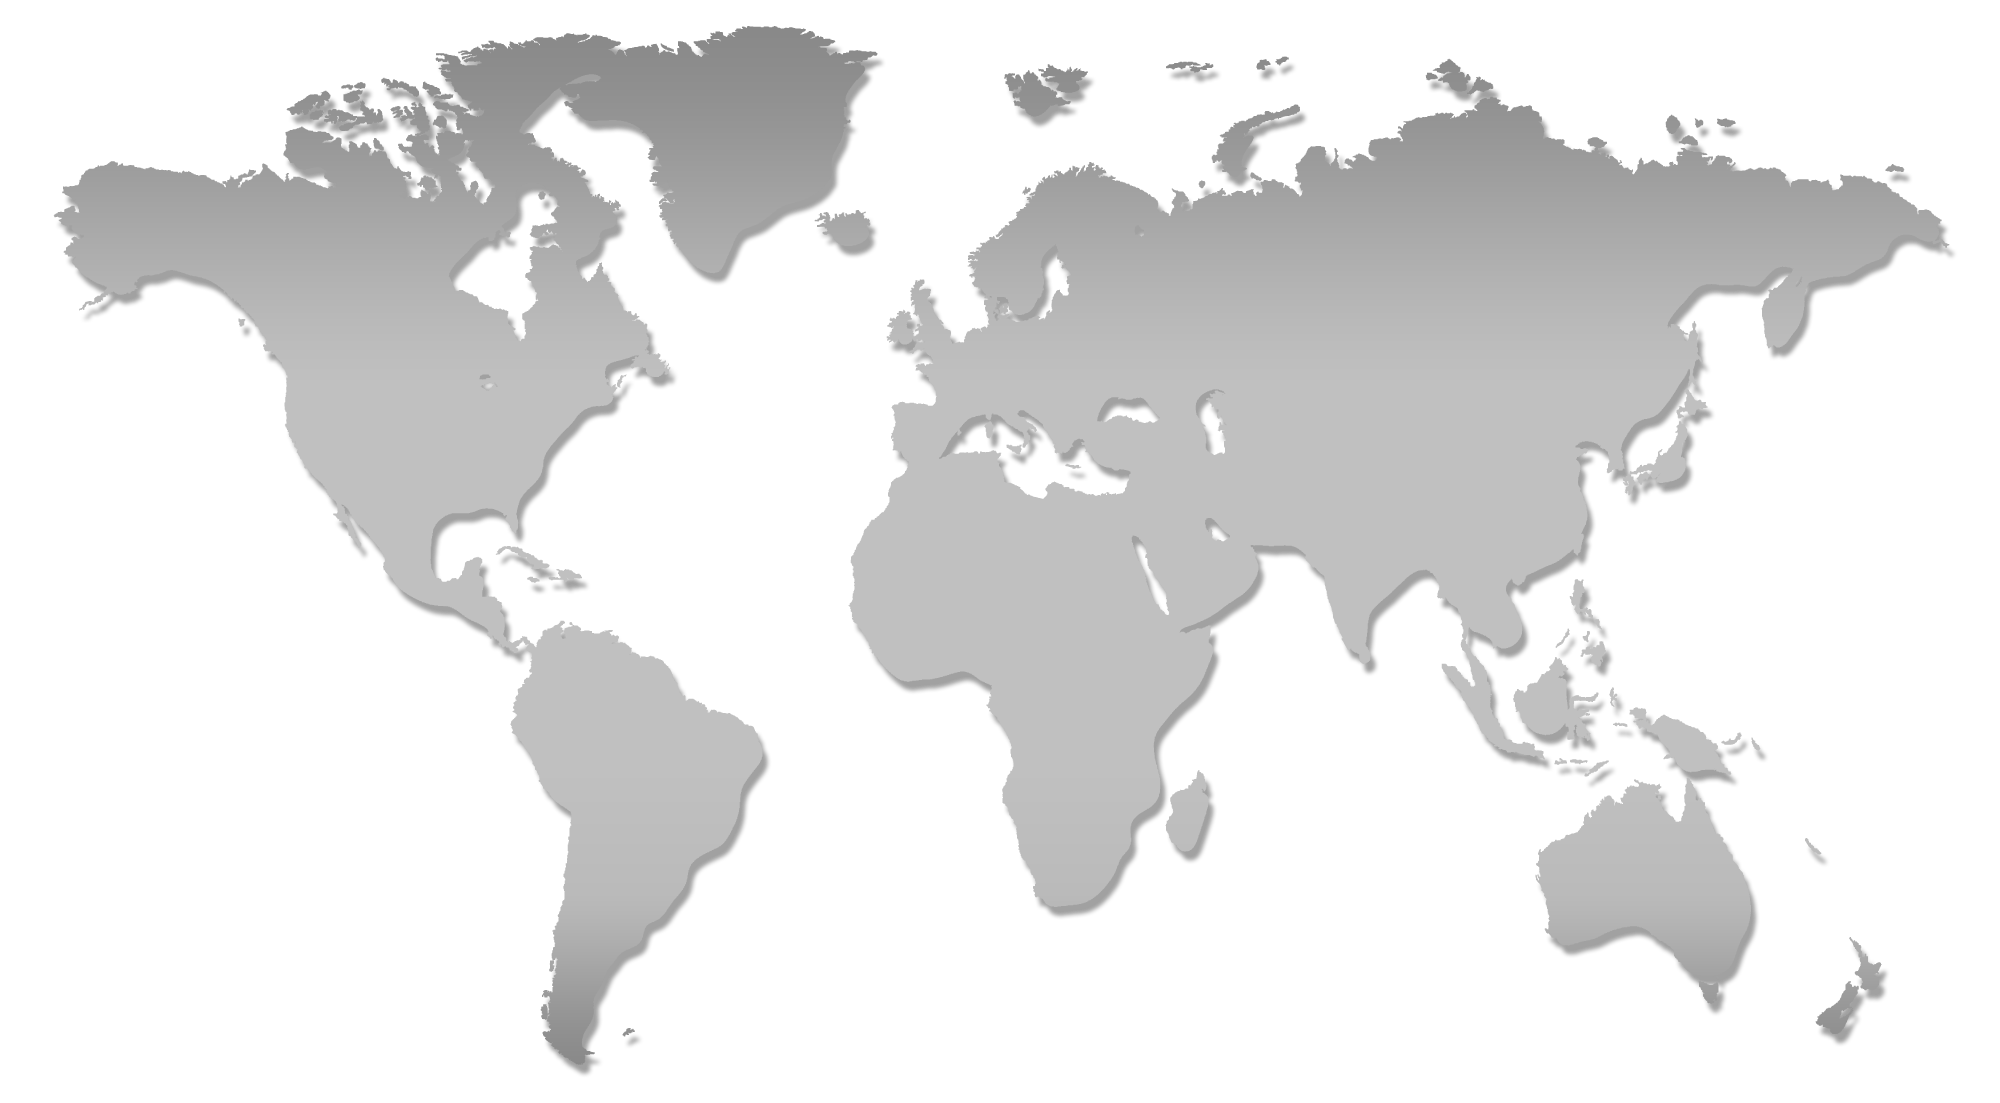 Download World Map PNG Image.